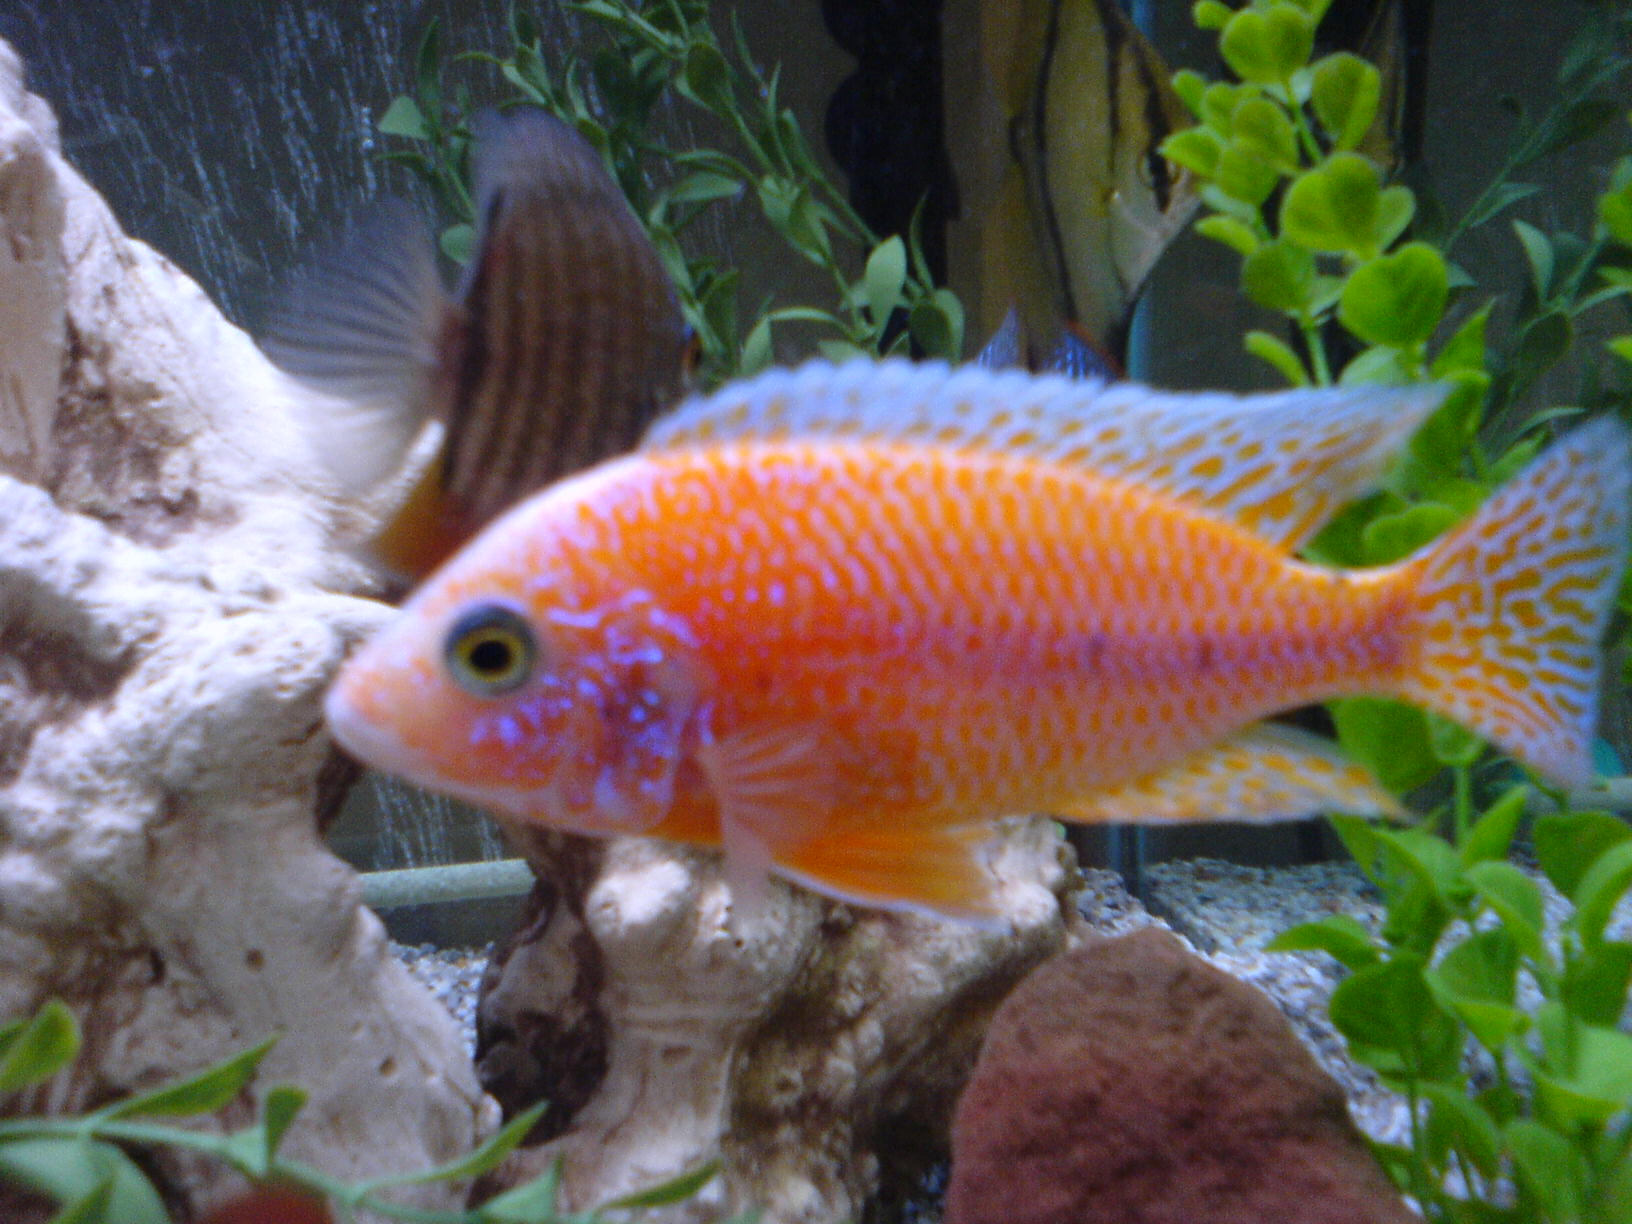 cichlids.com: so is this a strawberry peacock?